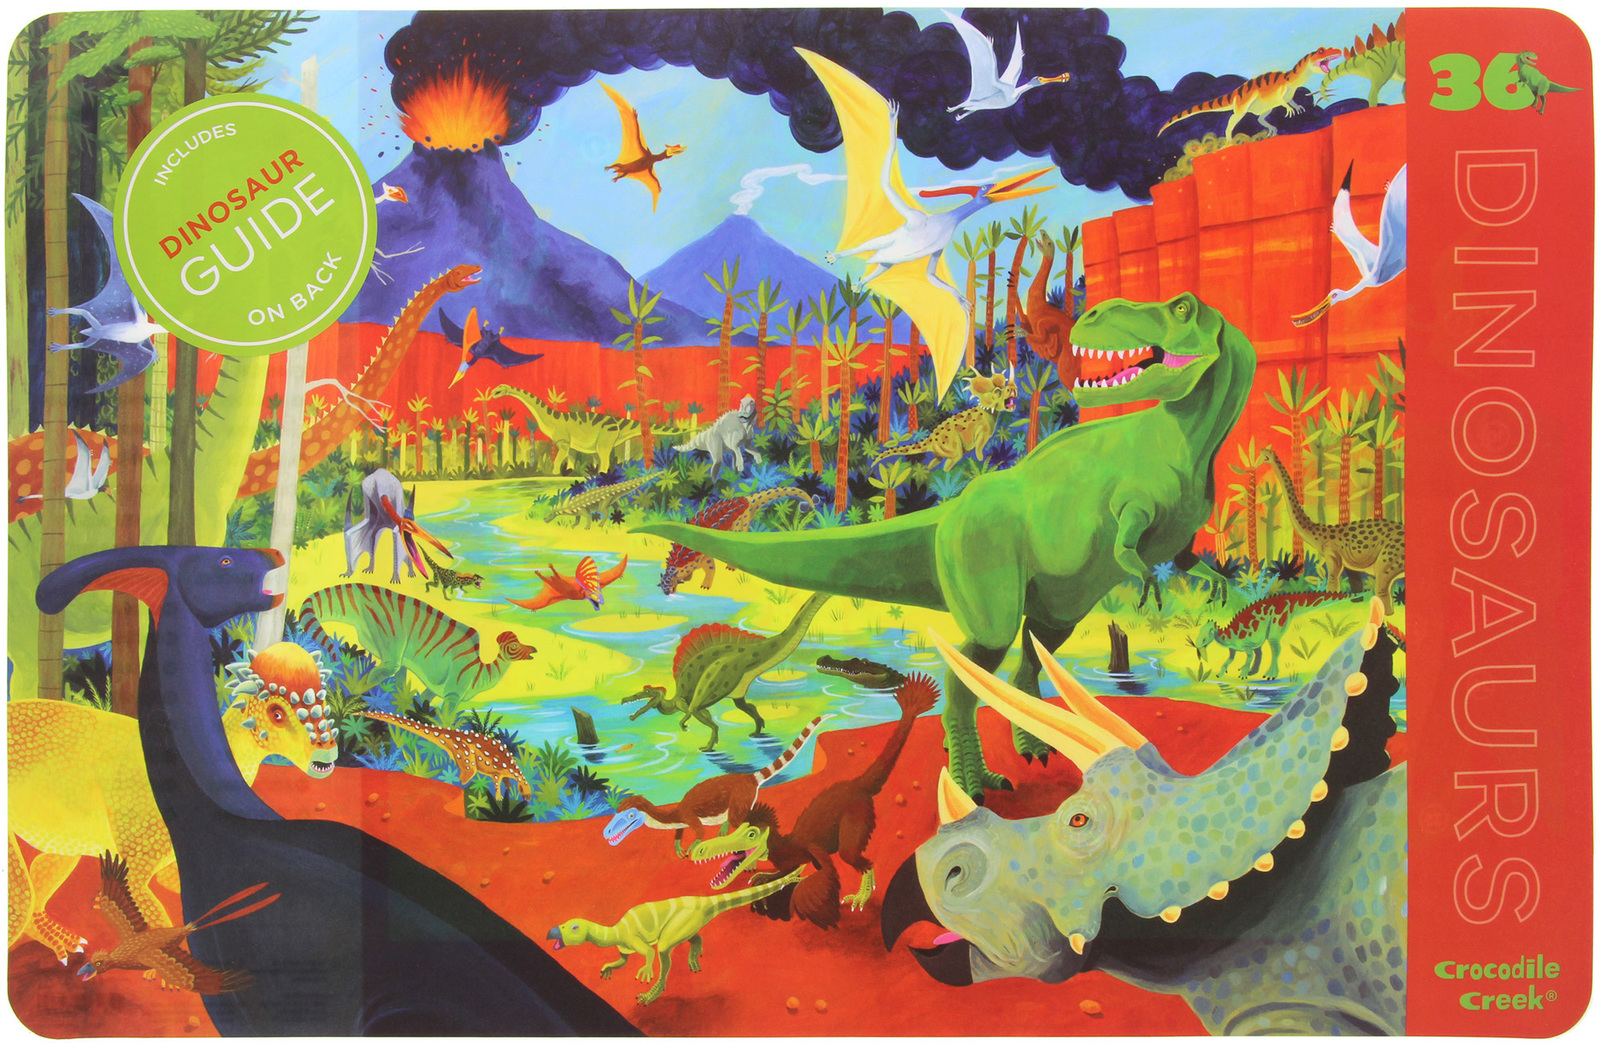 Crocodile Creek 2-Sided Placemat - Dinosaurs image